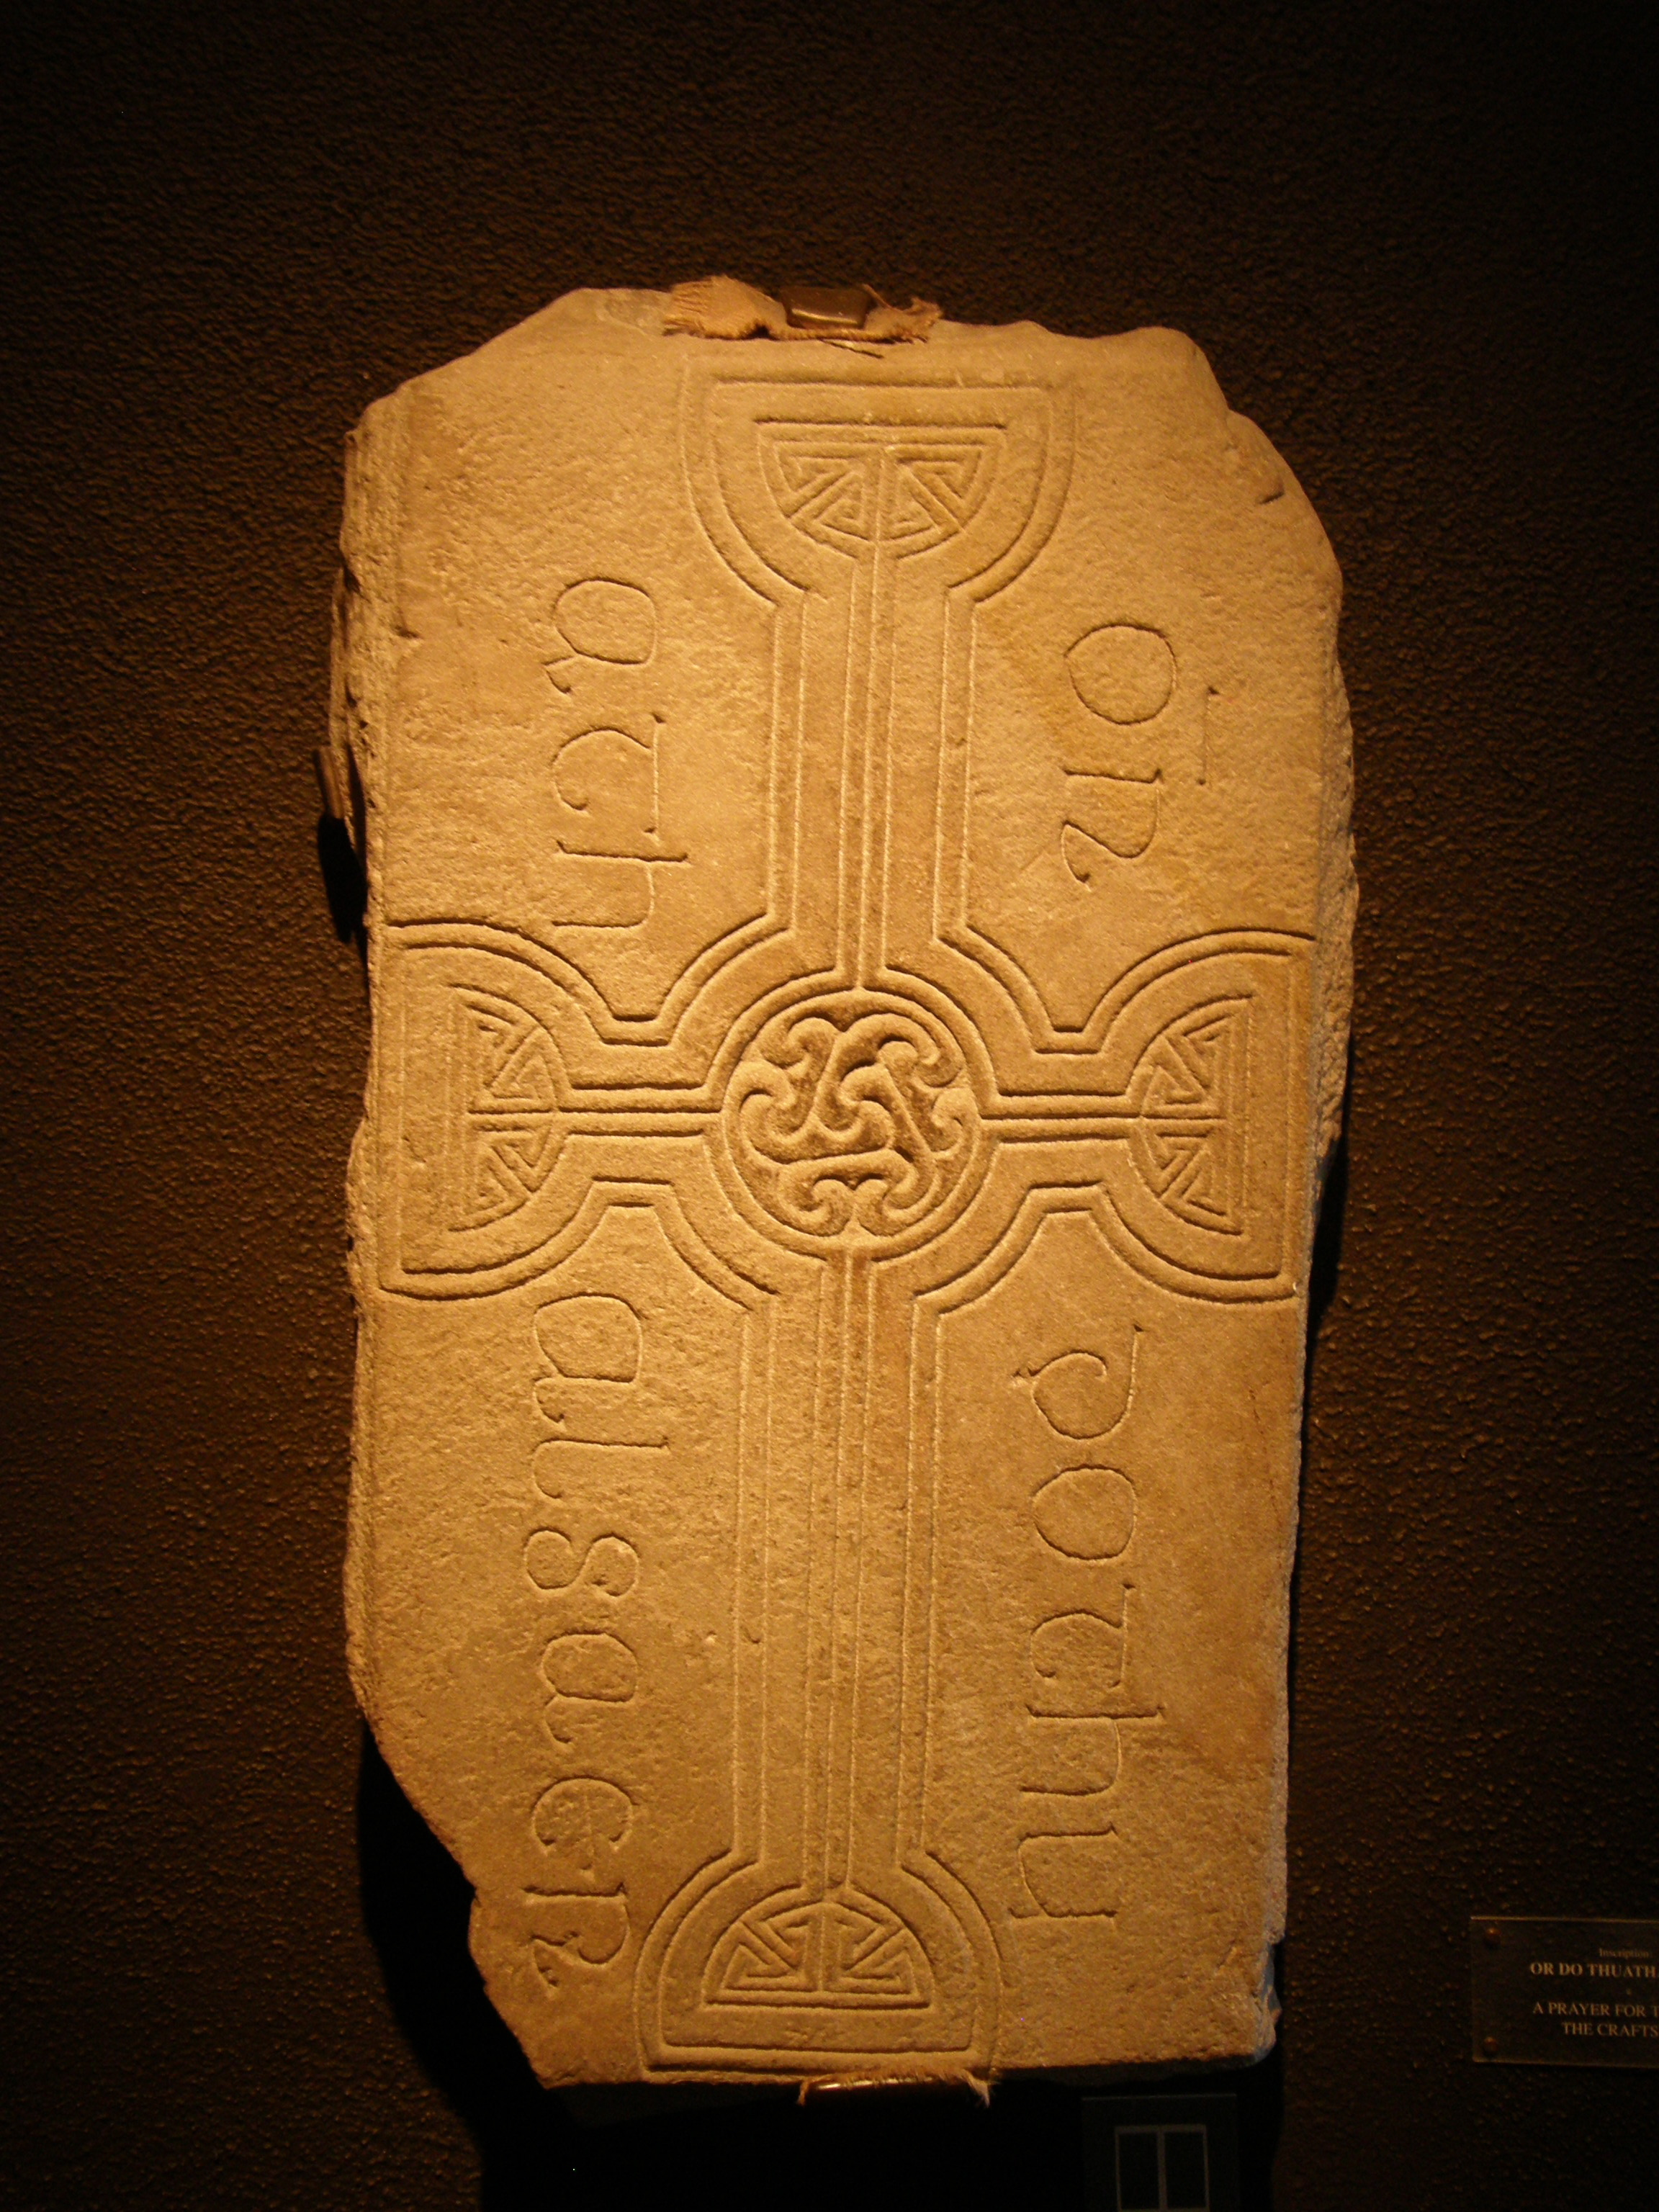 Inscribed Stone with Triskelion from Clonmacnoise, Co. Offaly, Éire